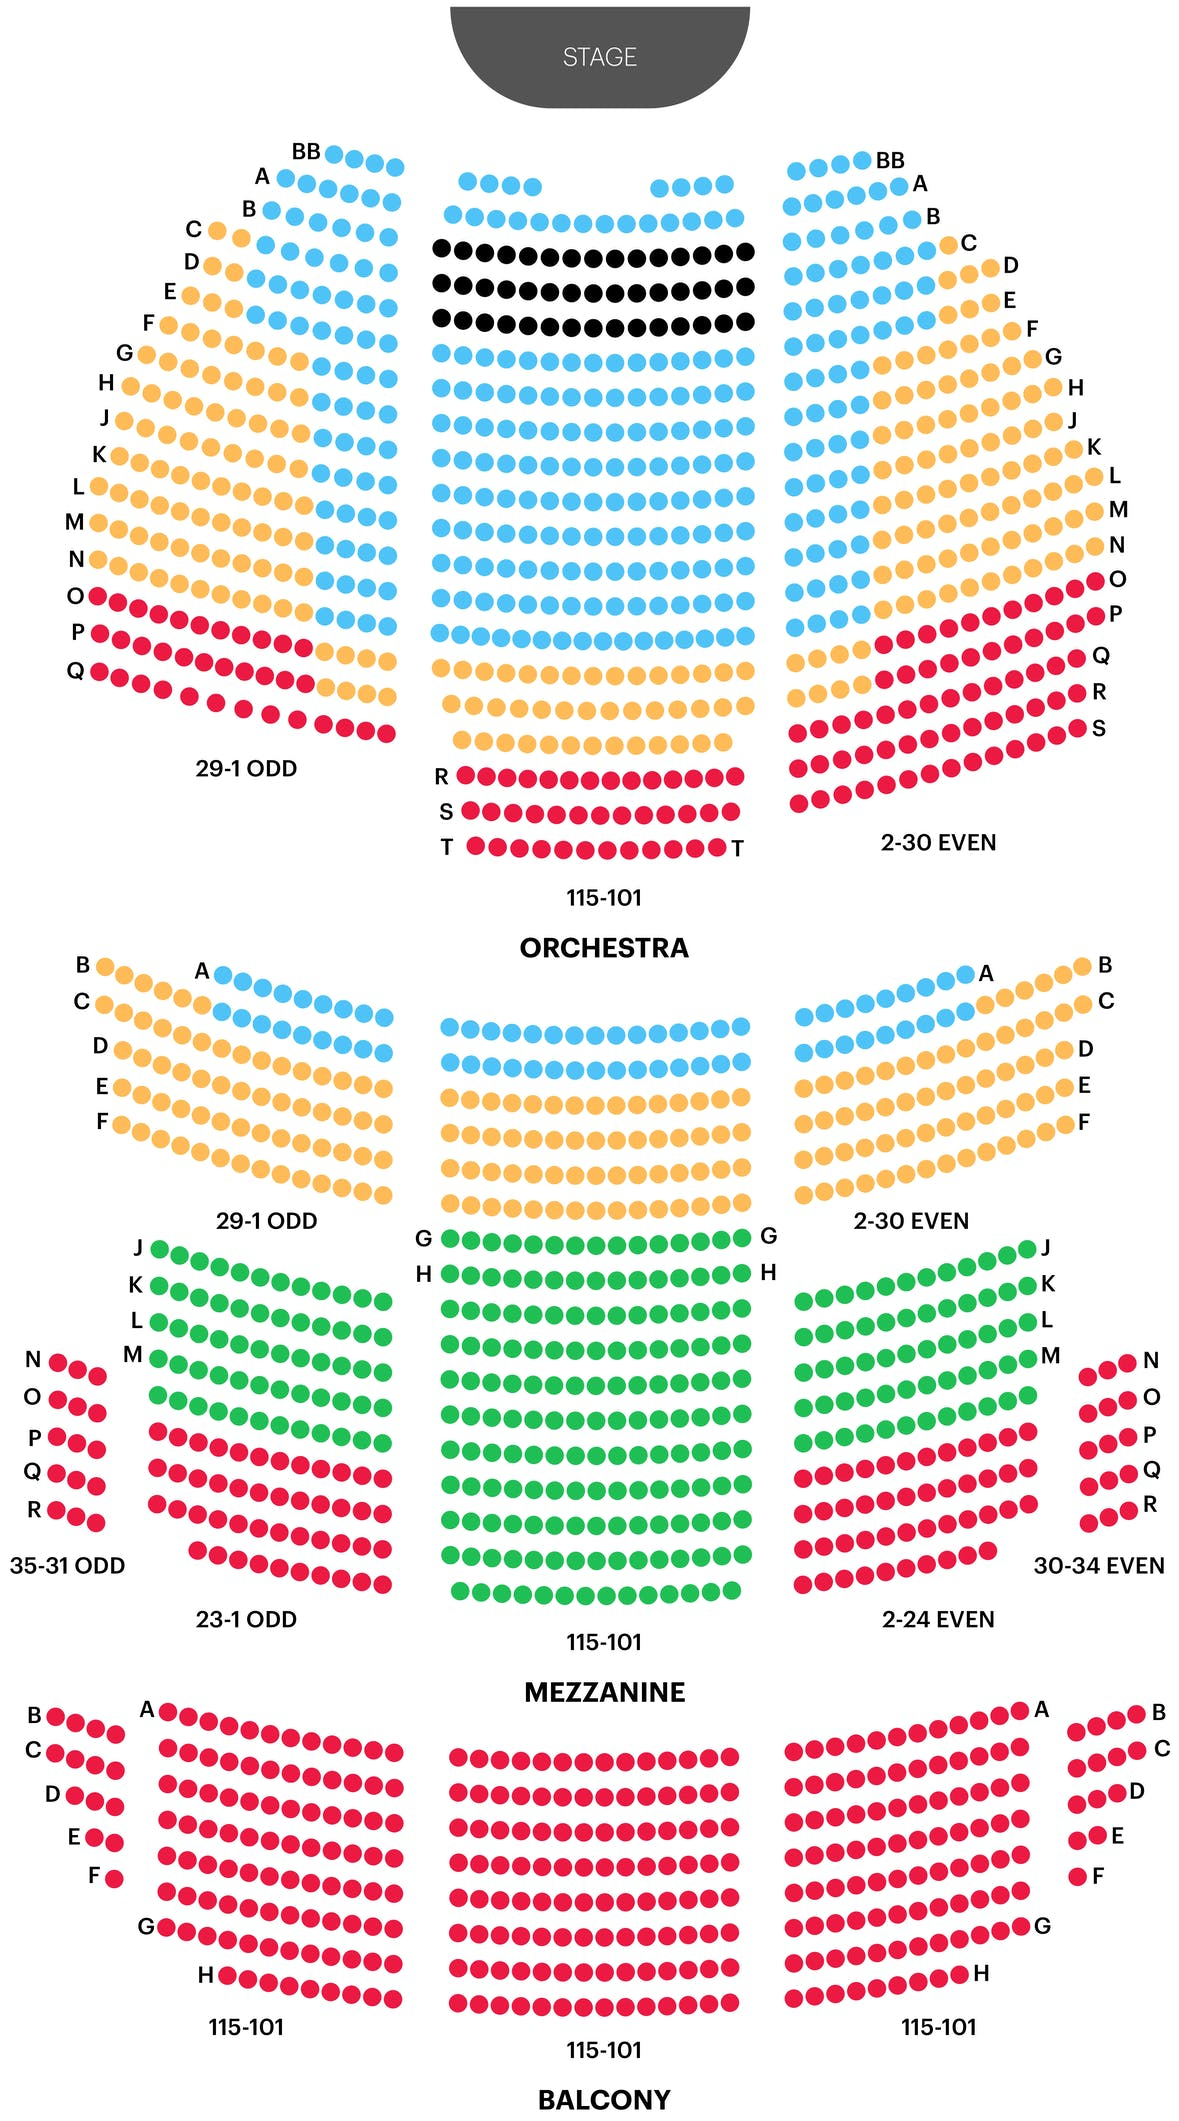 St. James Theatre Seating Chart Map